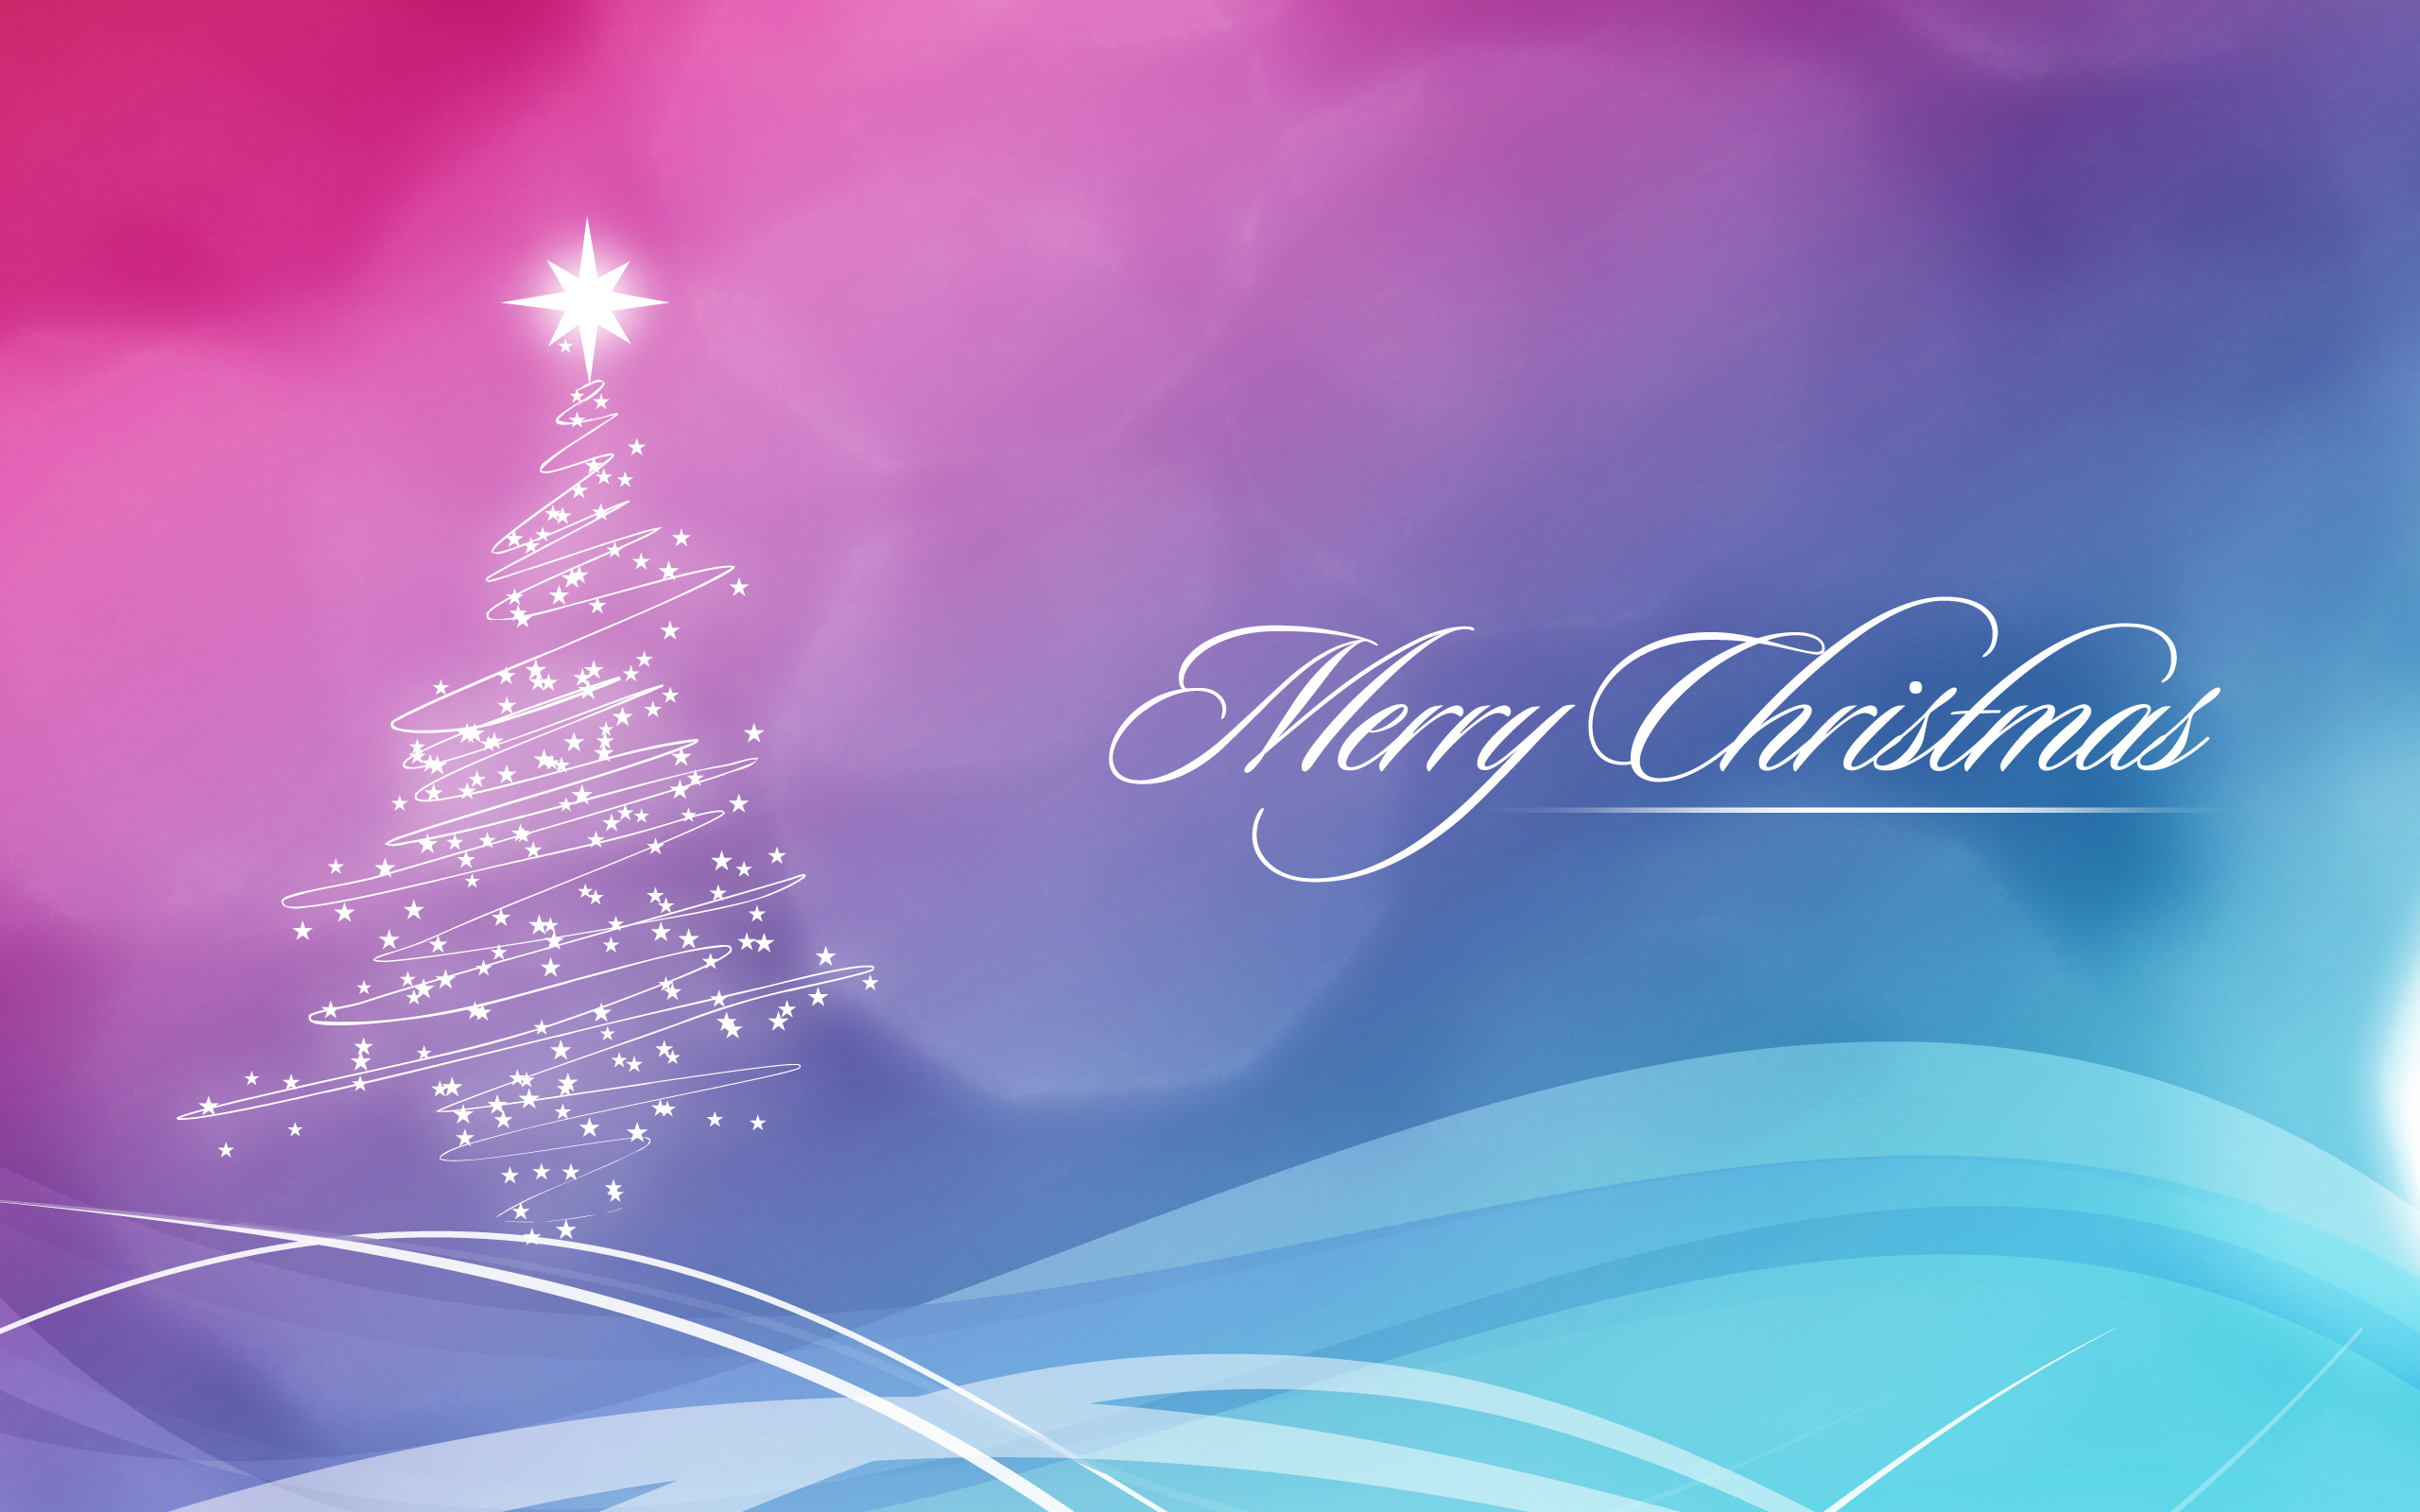 2560x1600 Blue and Pink Christmas Wallpaper desktop PC and Mac 2560x1600